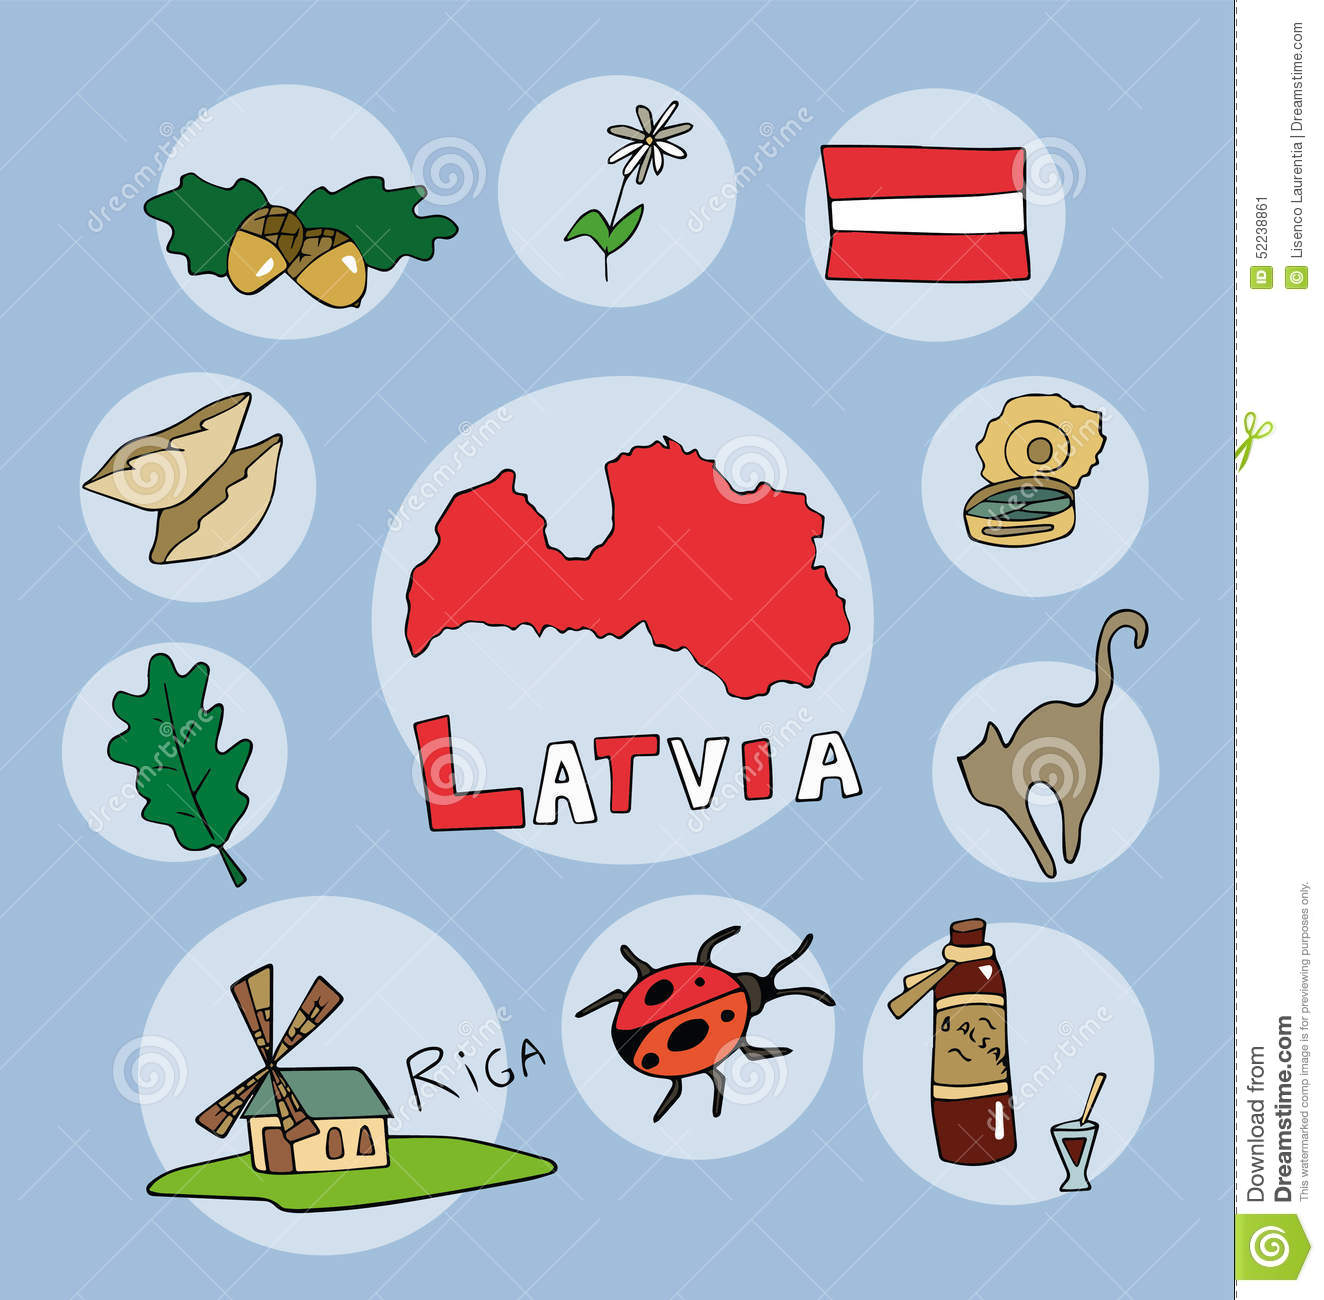 Easy To Draw Map Of Spain on easy to draw spain flag, simple map of spain, easy to draw map england, natural map of spain, high quality map of spain, accurate map of spain,